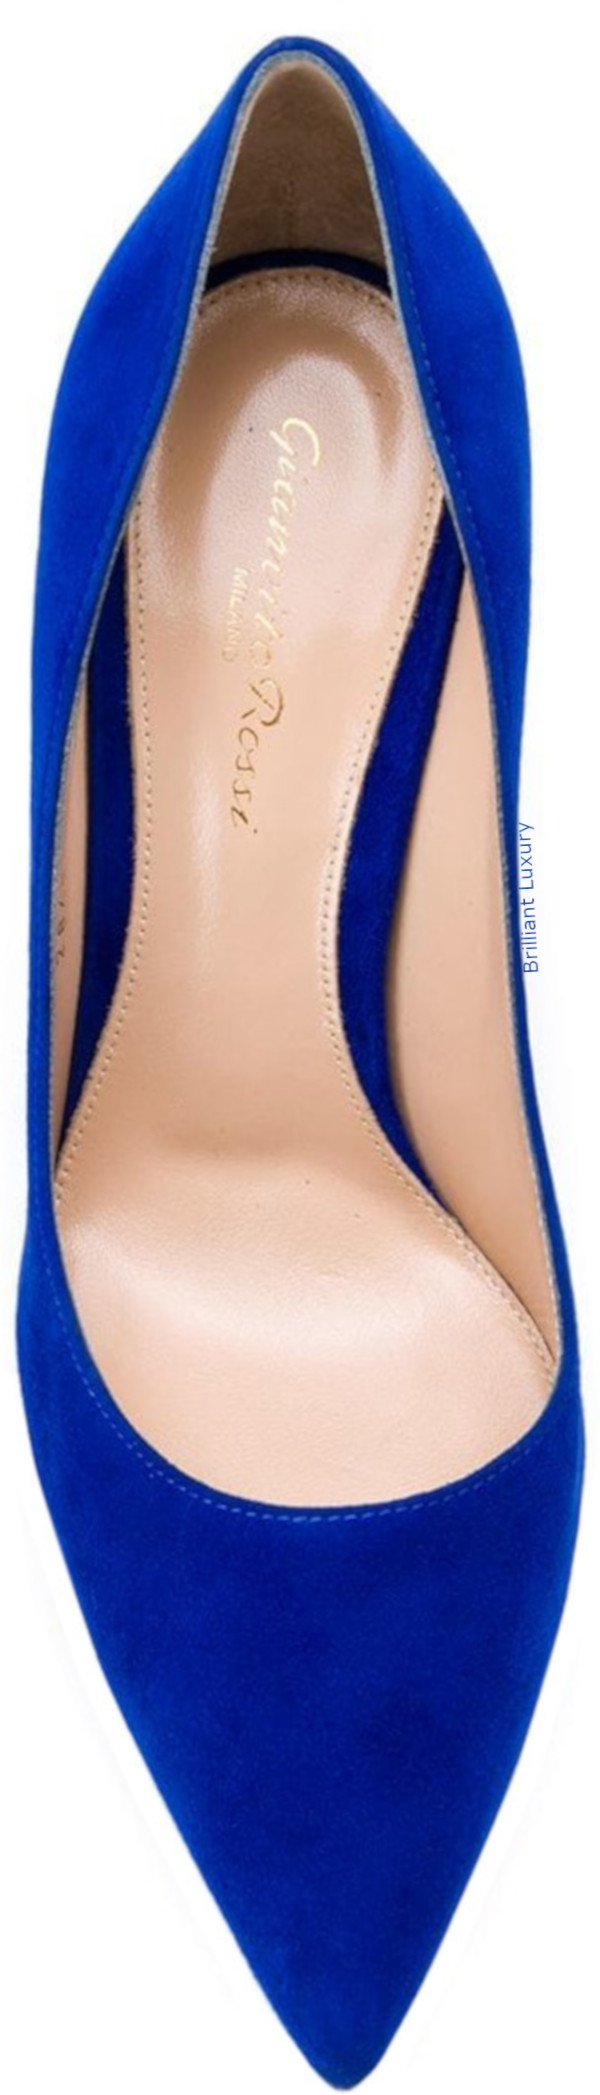 Gianvito Rossi pointed pumps in blue